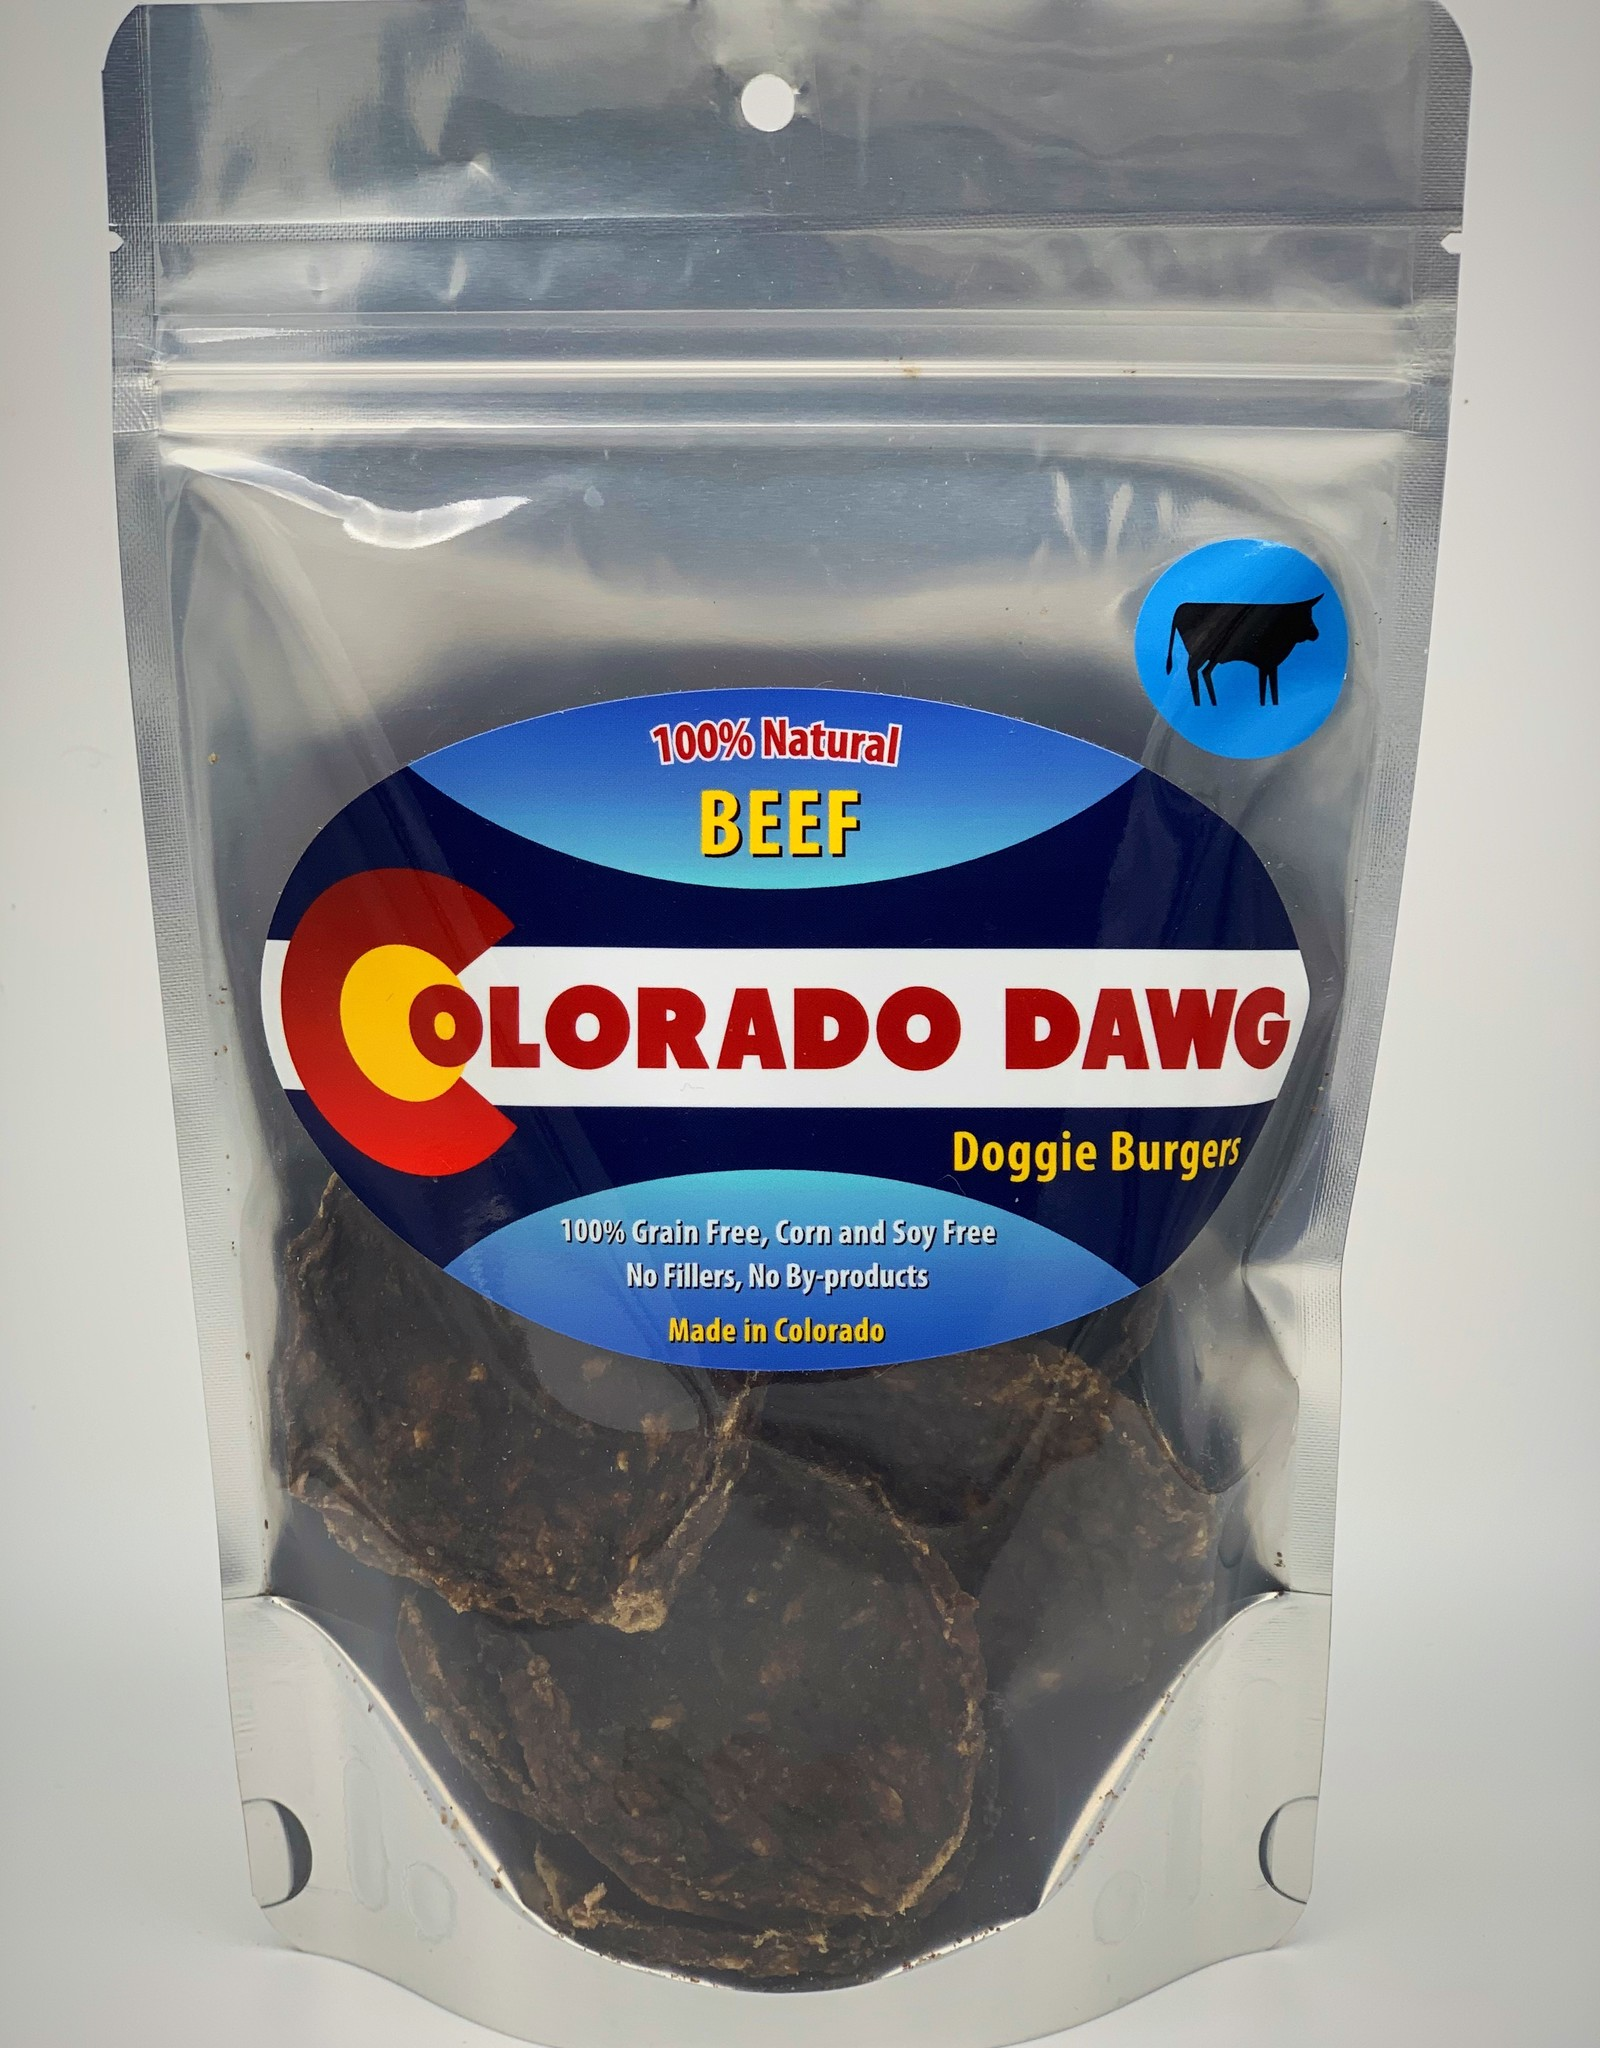 Colorado Dawg Beef Doggie Burger - 4oz